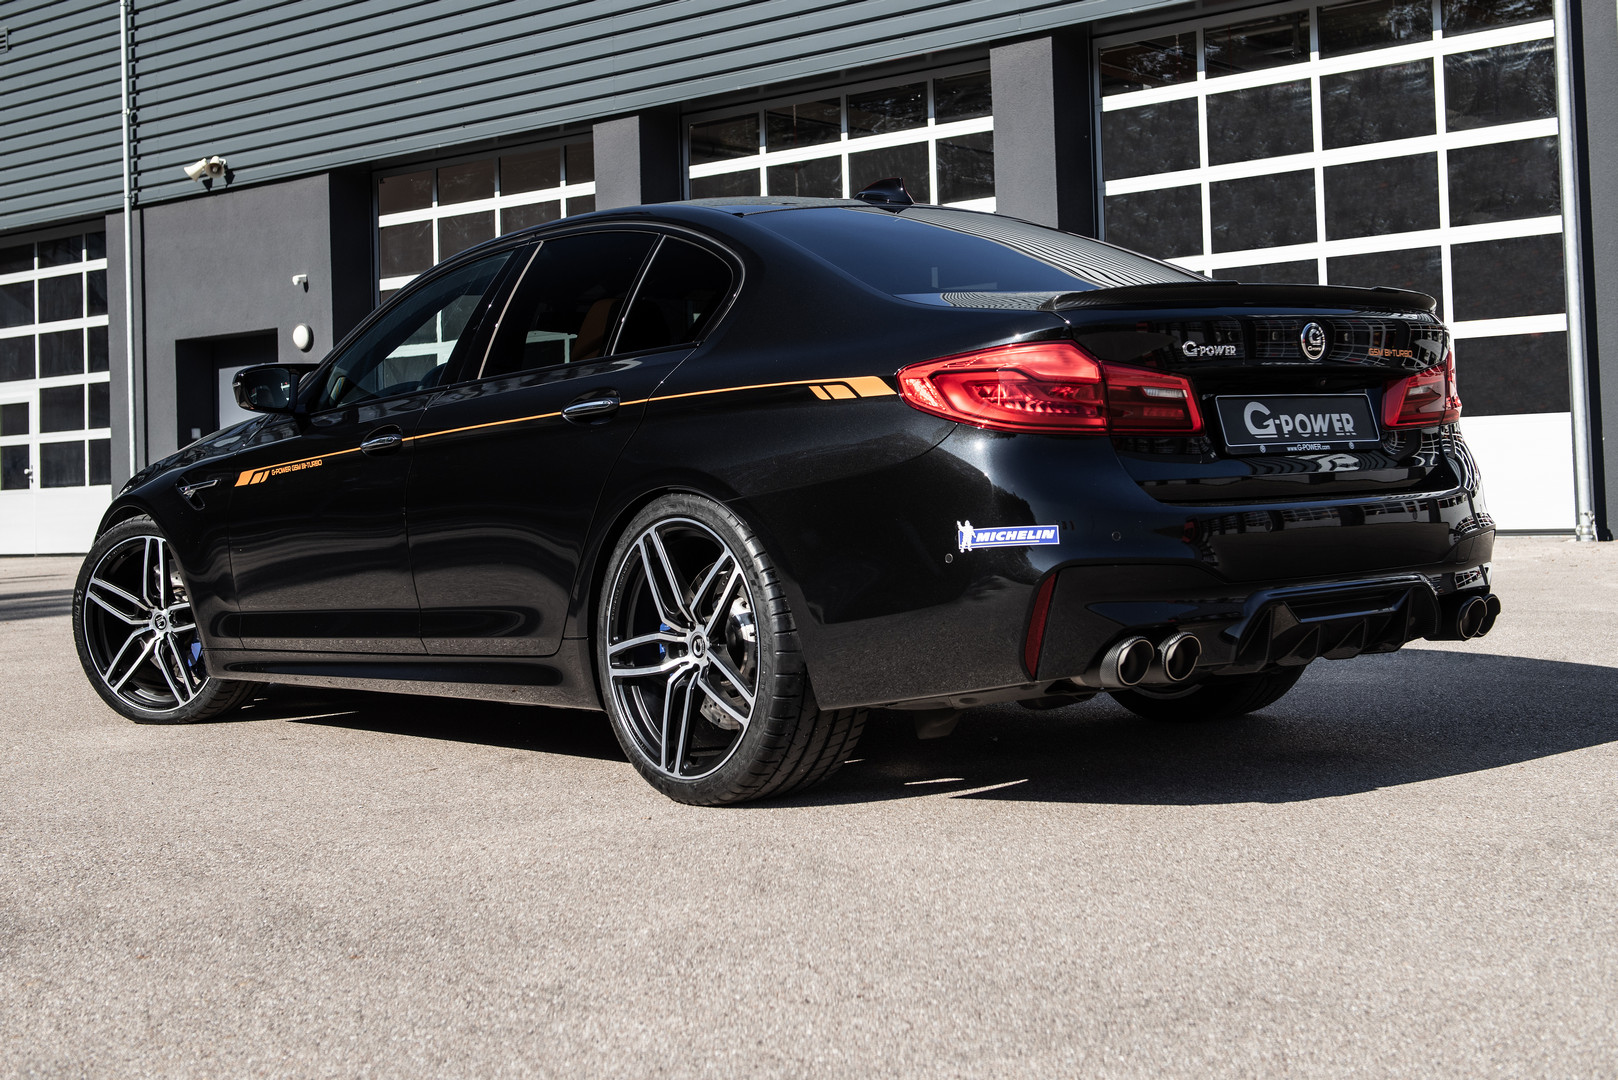 G-Power BMW F90 M5 800hp